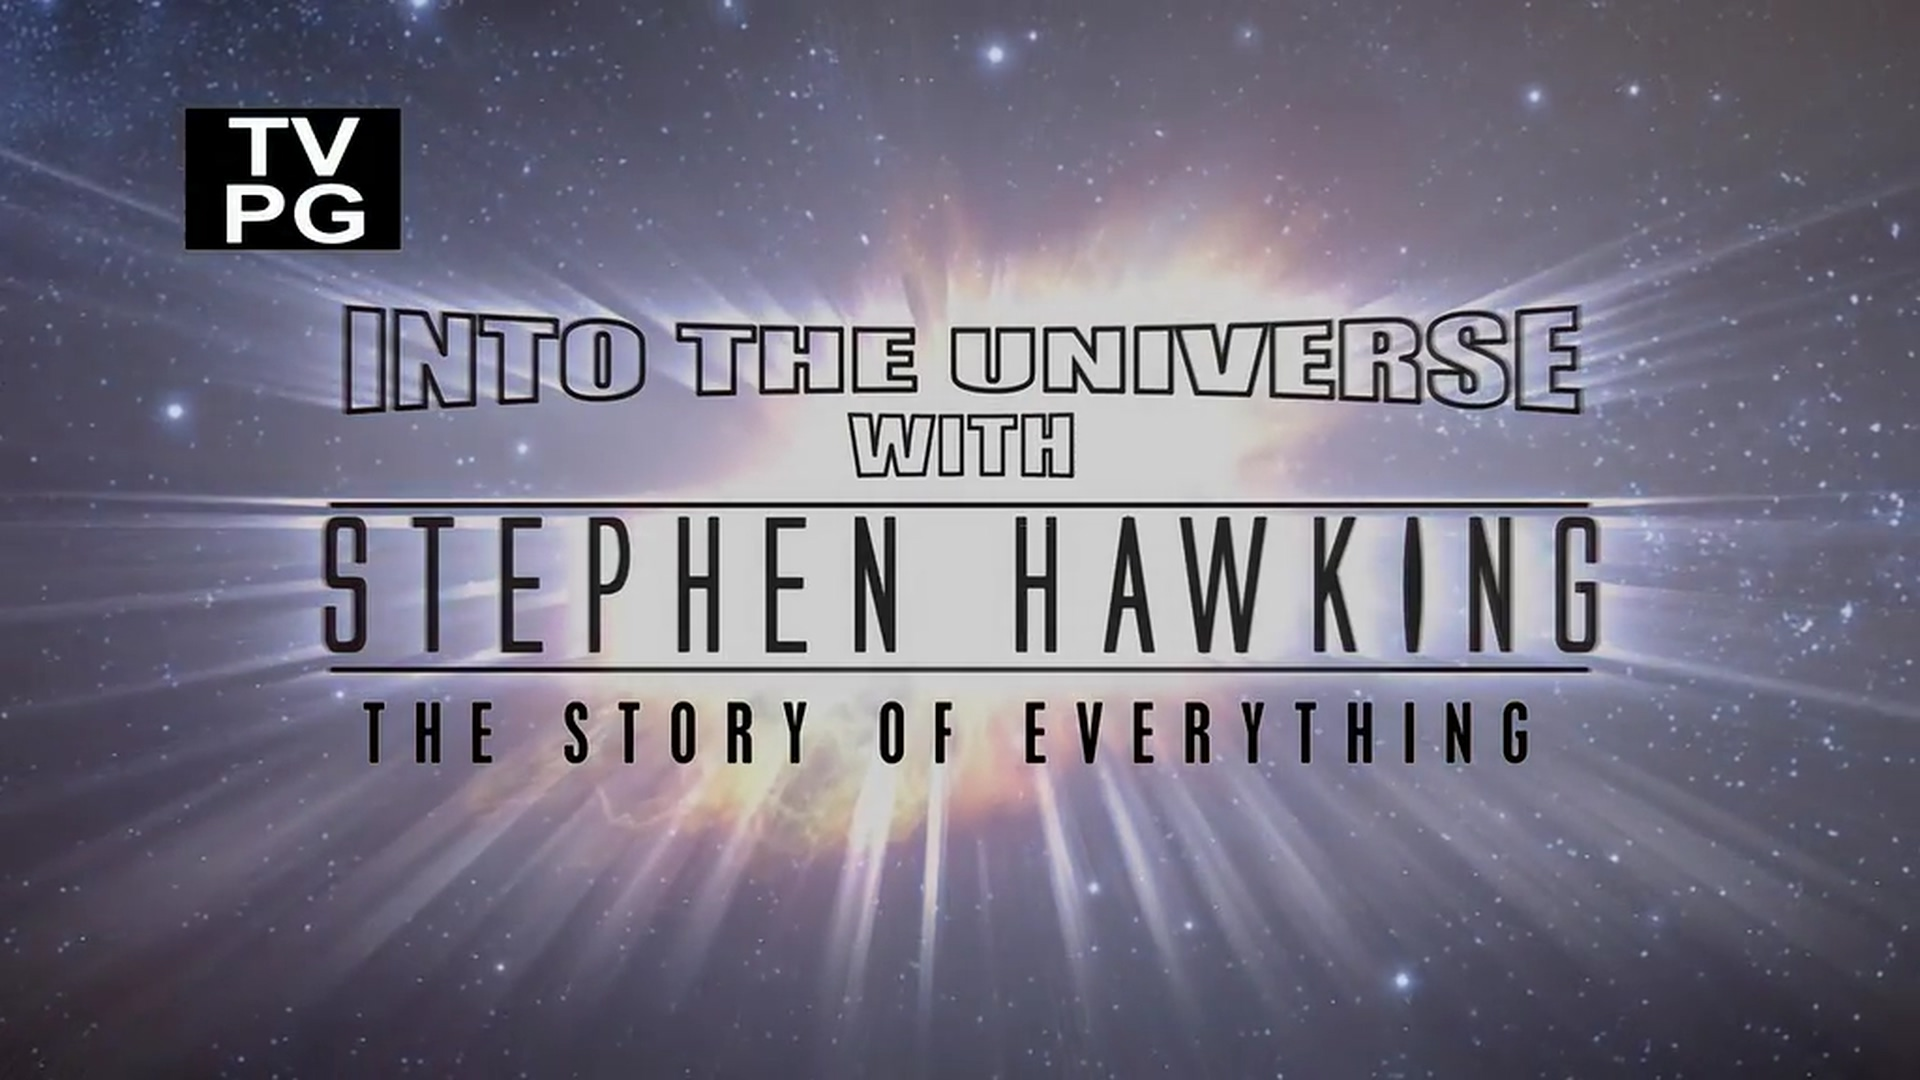 Discovery.Into.The.Universe.With.Stephen.Hawking.jpg